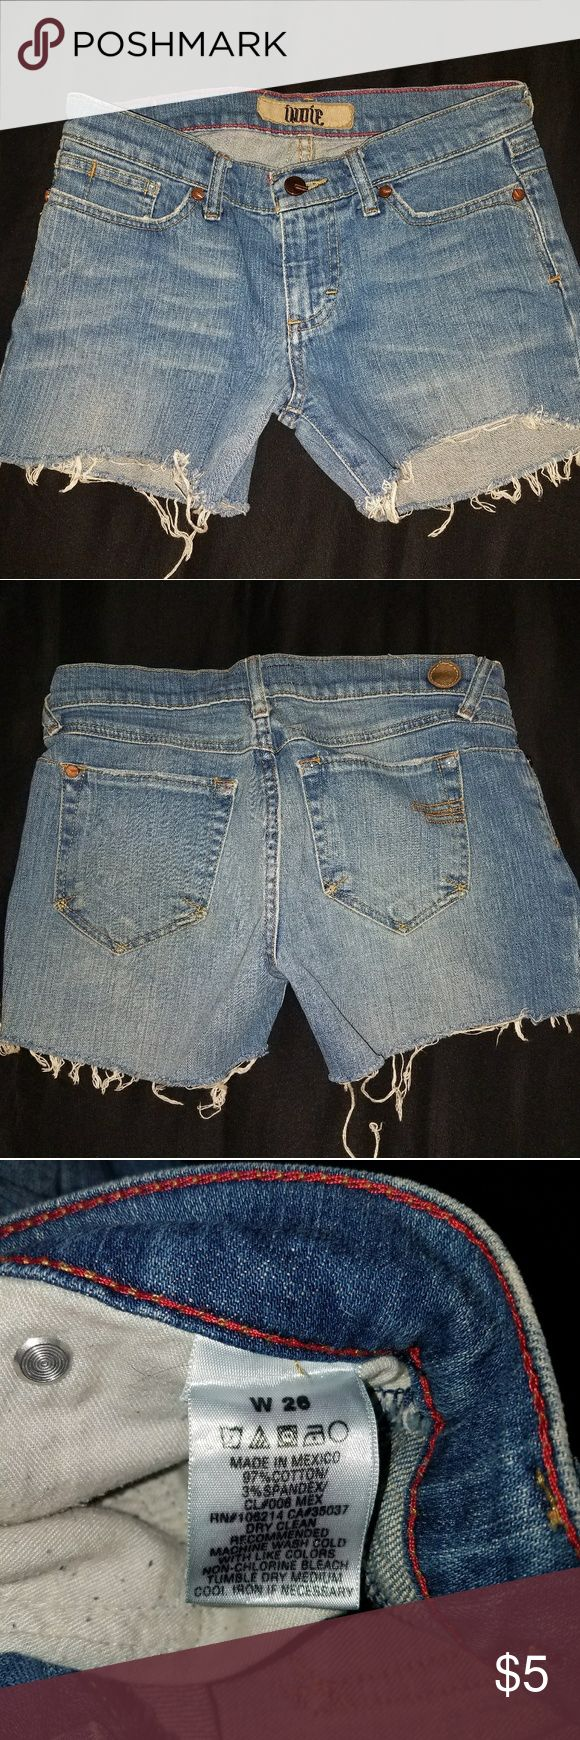 Indie Jeans Cutoff Shorts size 26 Indie jean cutoff shorts size 26. Worn a couple of times years ago, they've been in the bottom of a drawer since. These are not super short. No wear or fraying with exception of the legs where they are supposed to. Come from a pet friendly home. Jeans